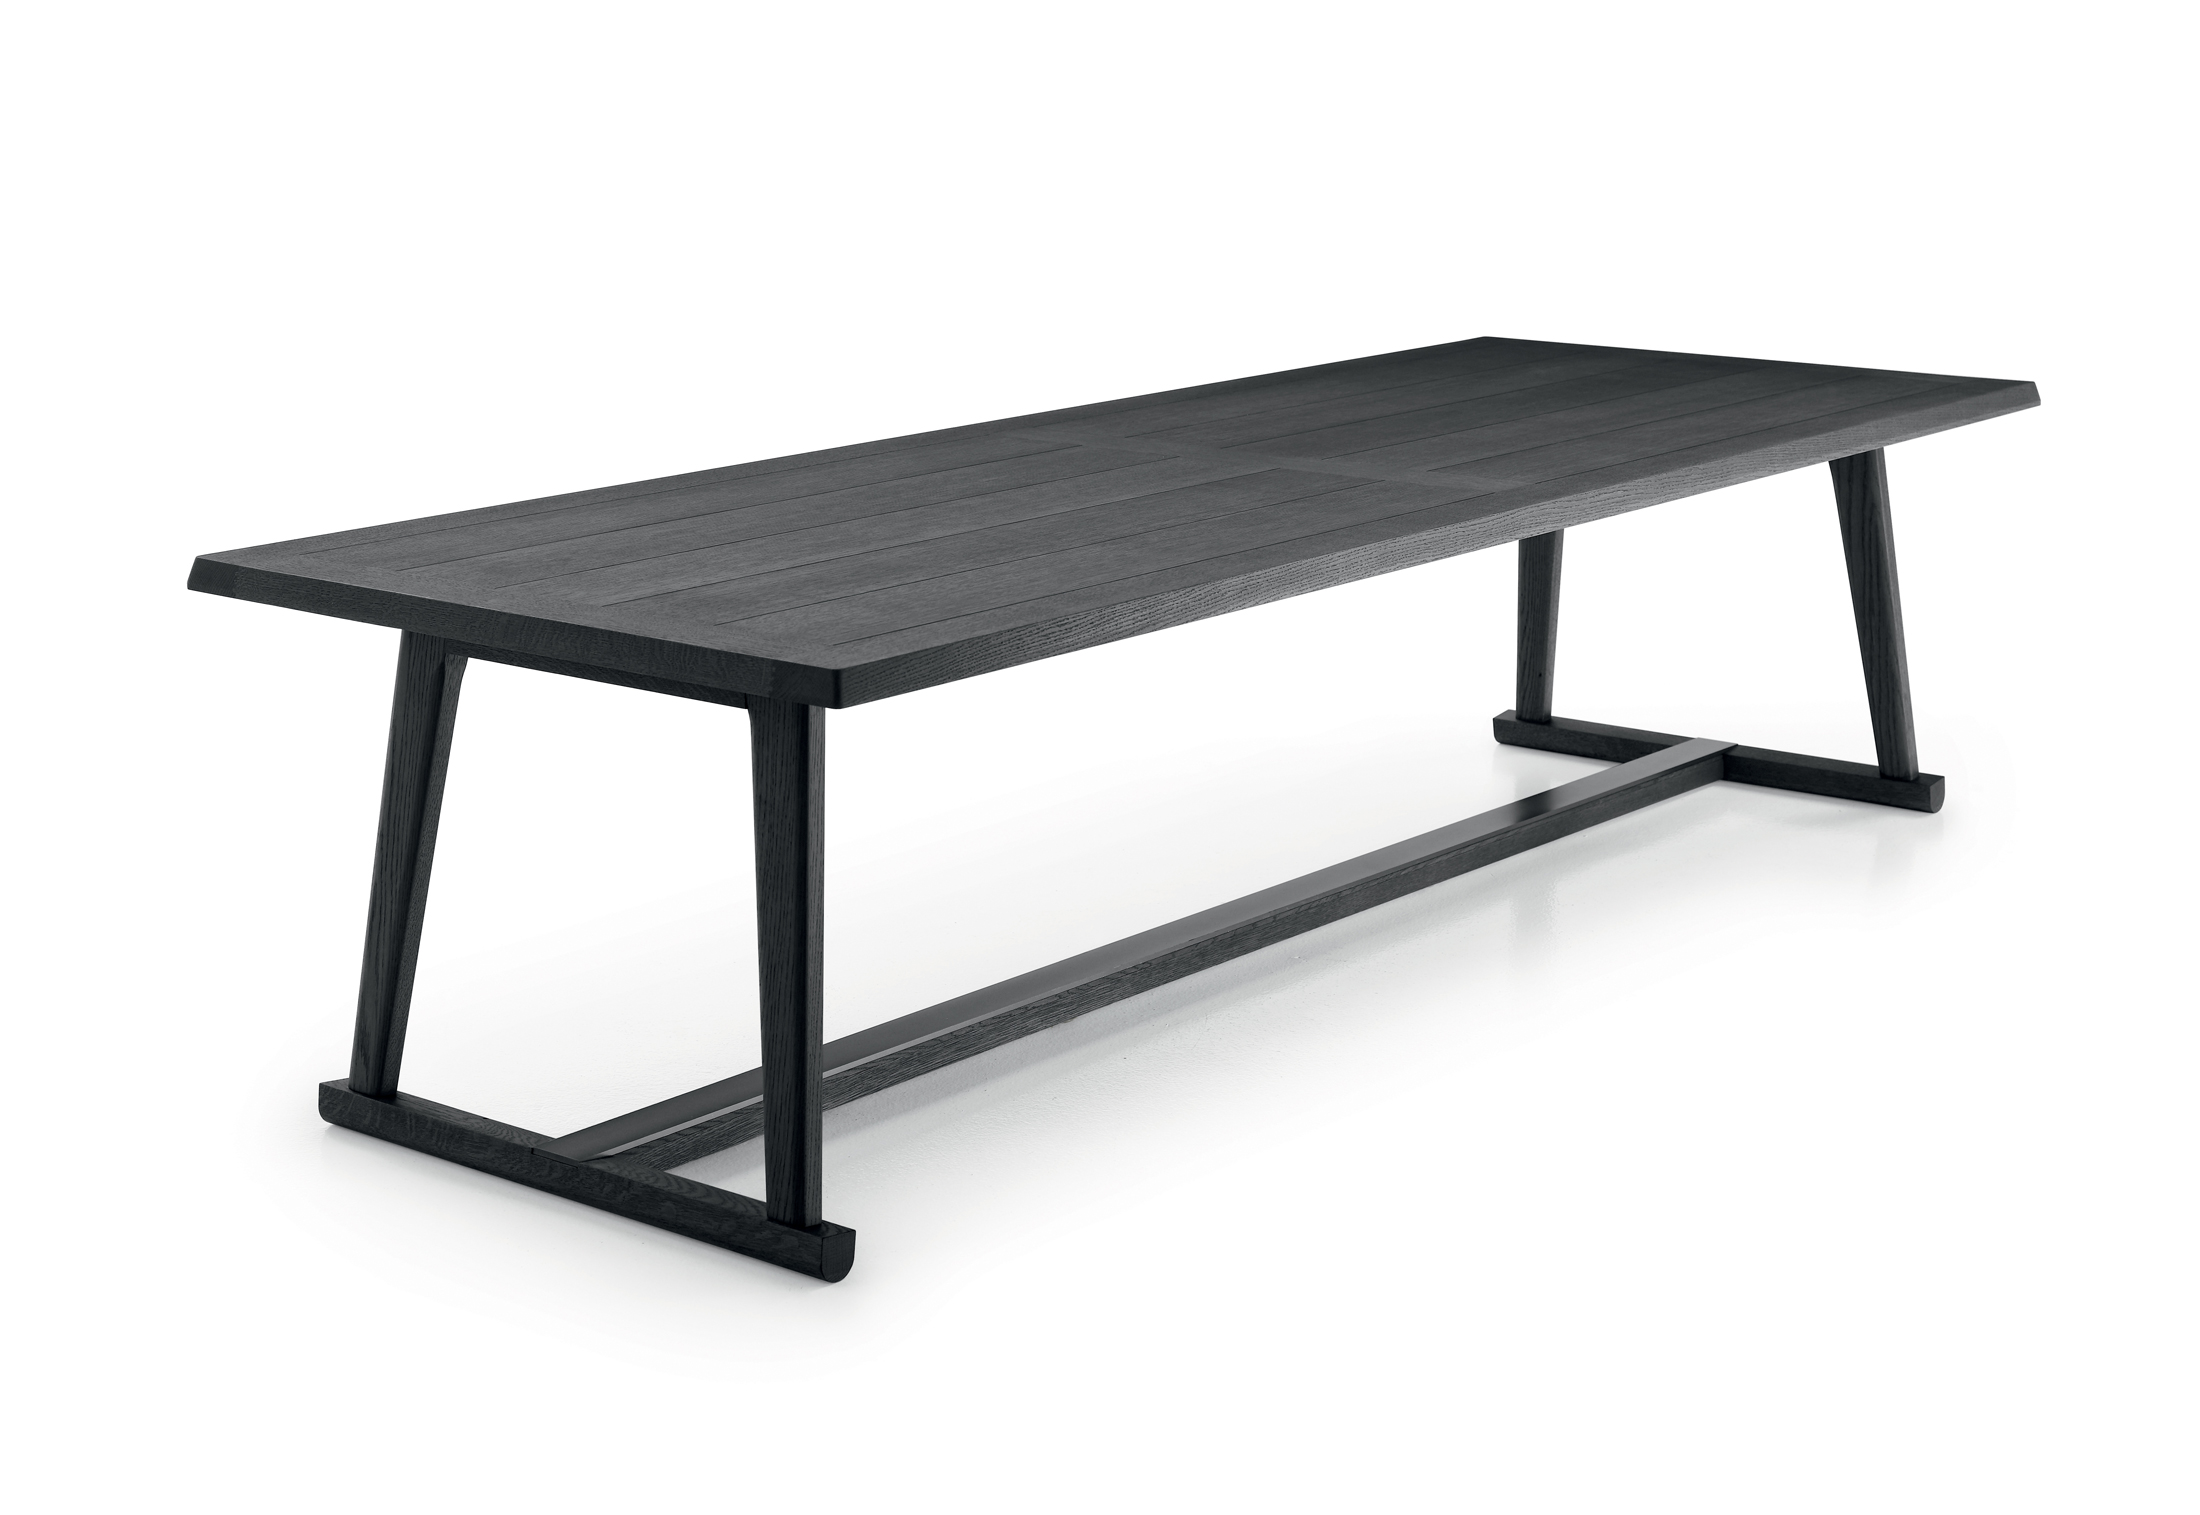 RECIPIO Dining Table By Maxalto